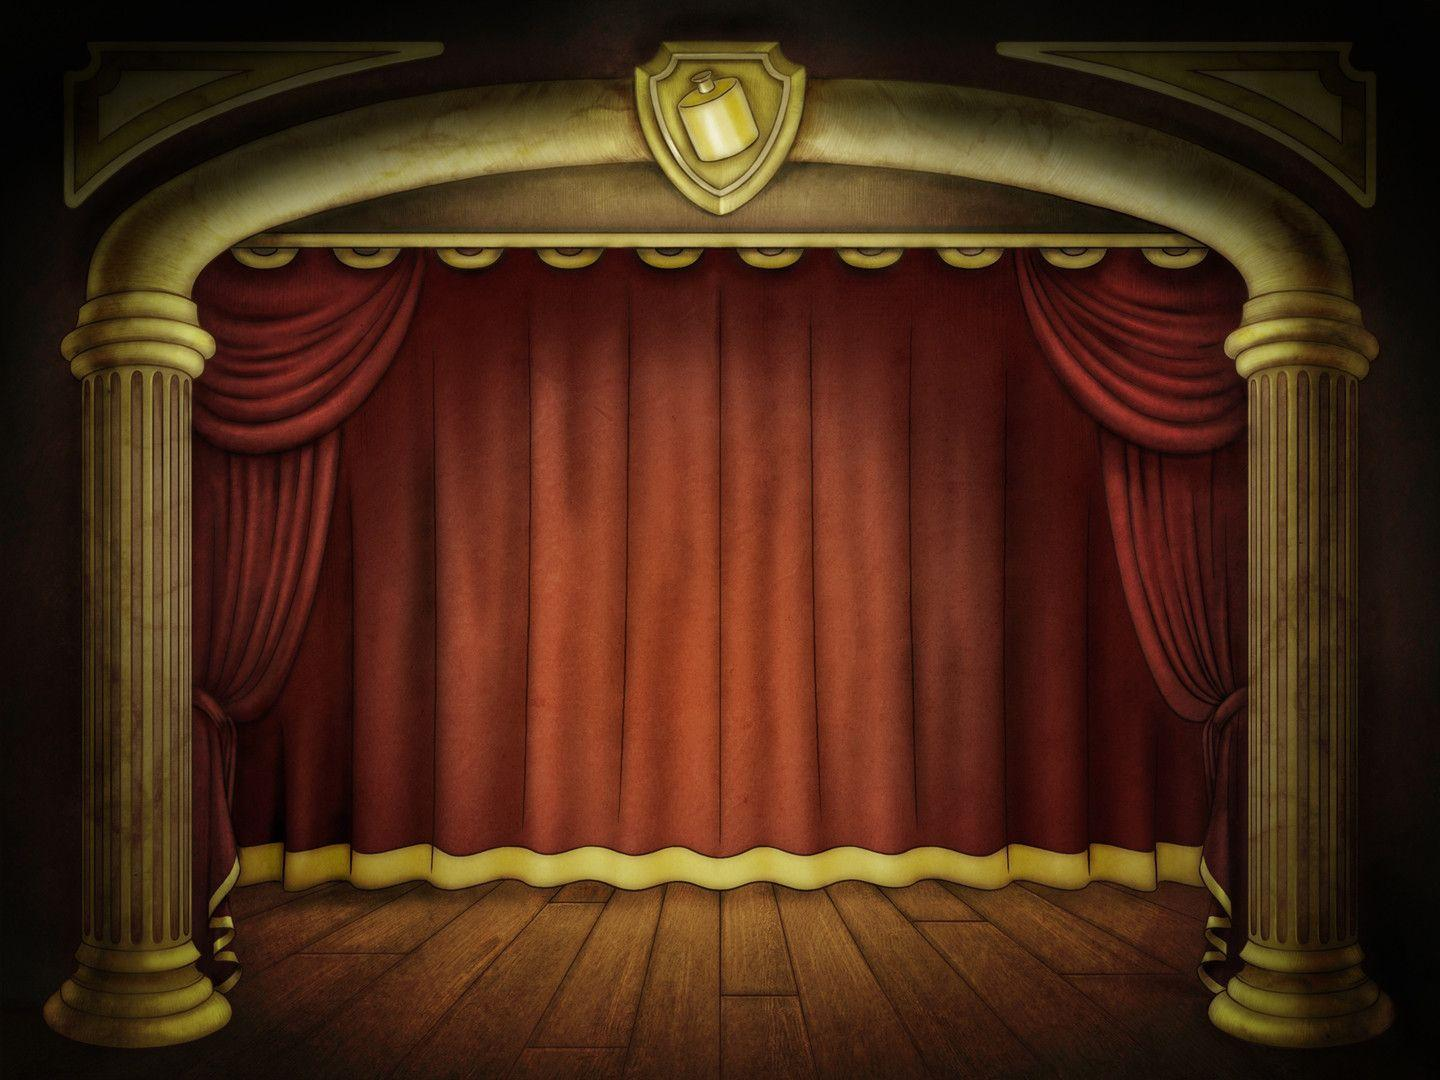 Stage Backgrounds - Wallpaper Cave - 170.2KB